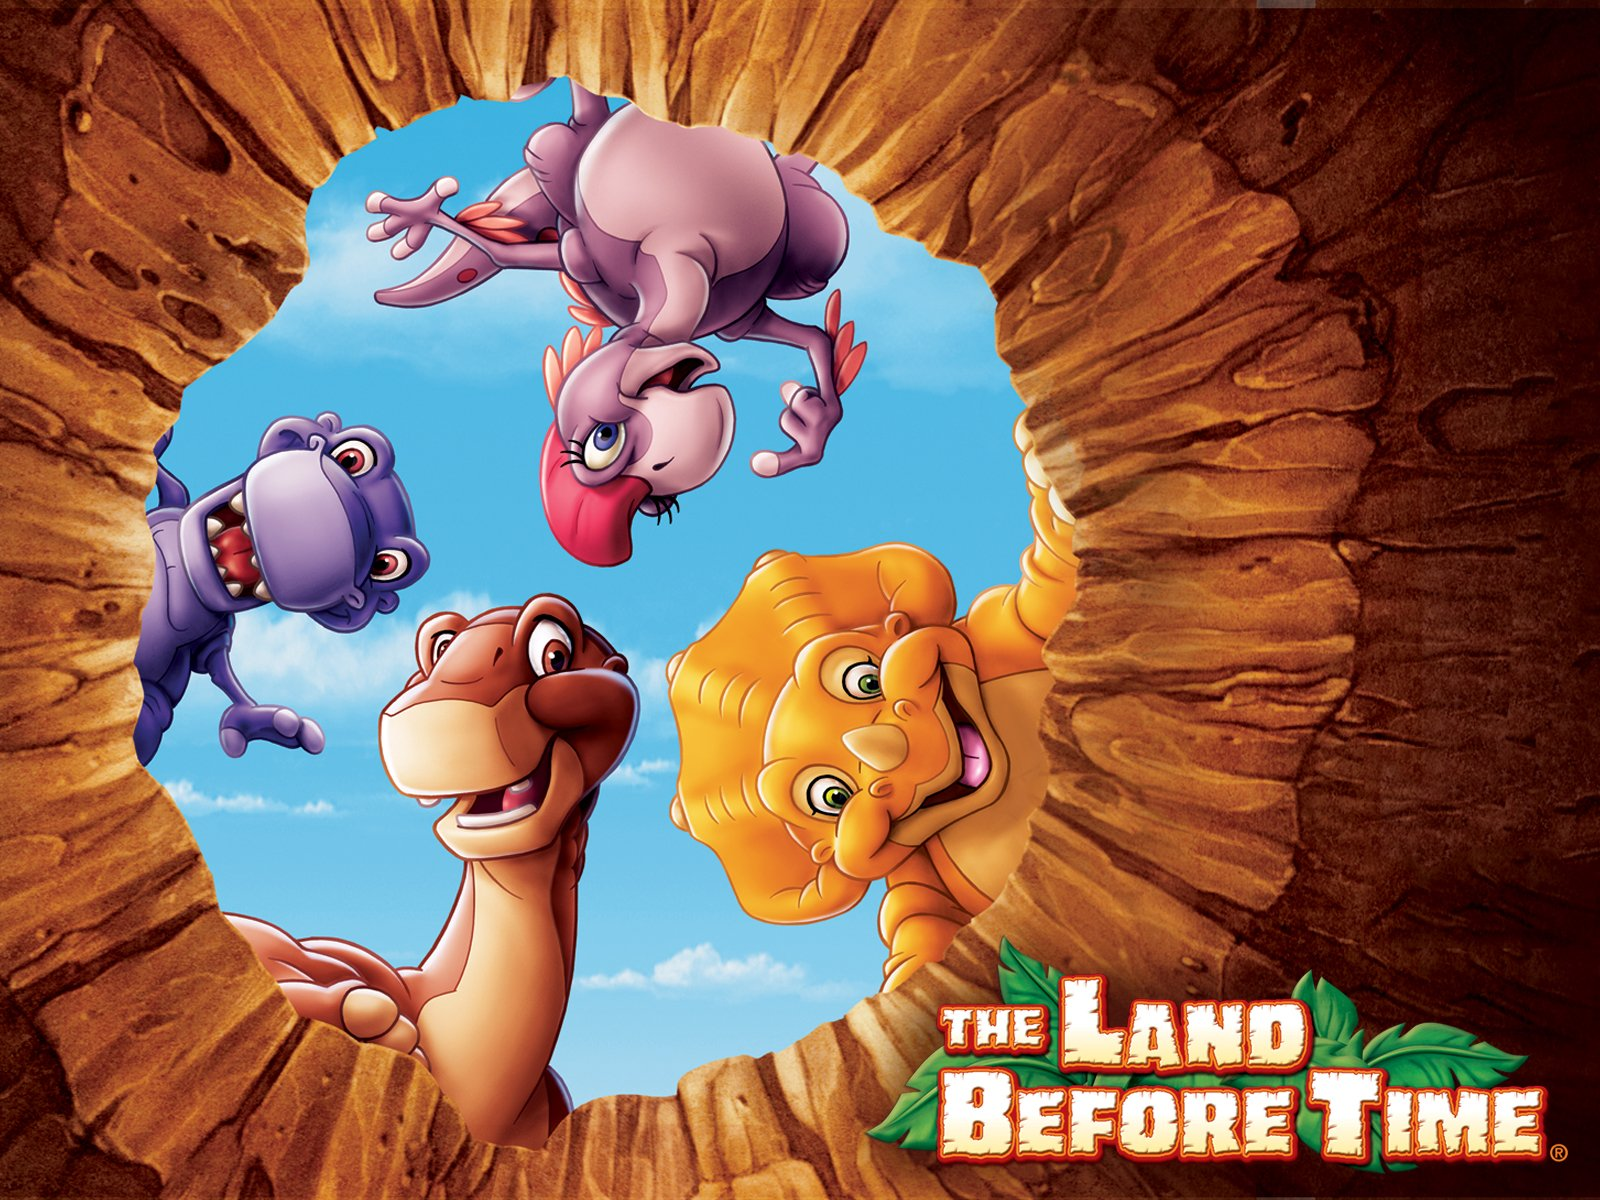 Amazon com: Watch The Land Before Time (2006/07) Season 1 | Prime Video